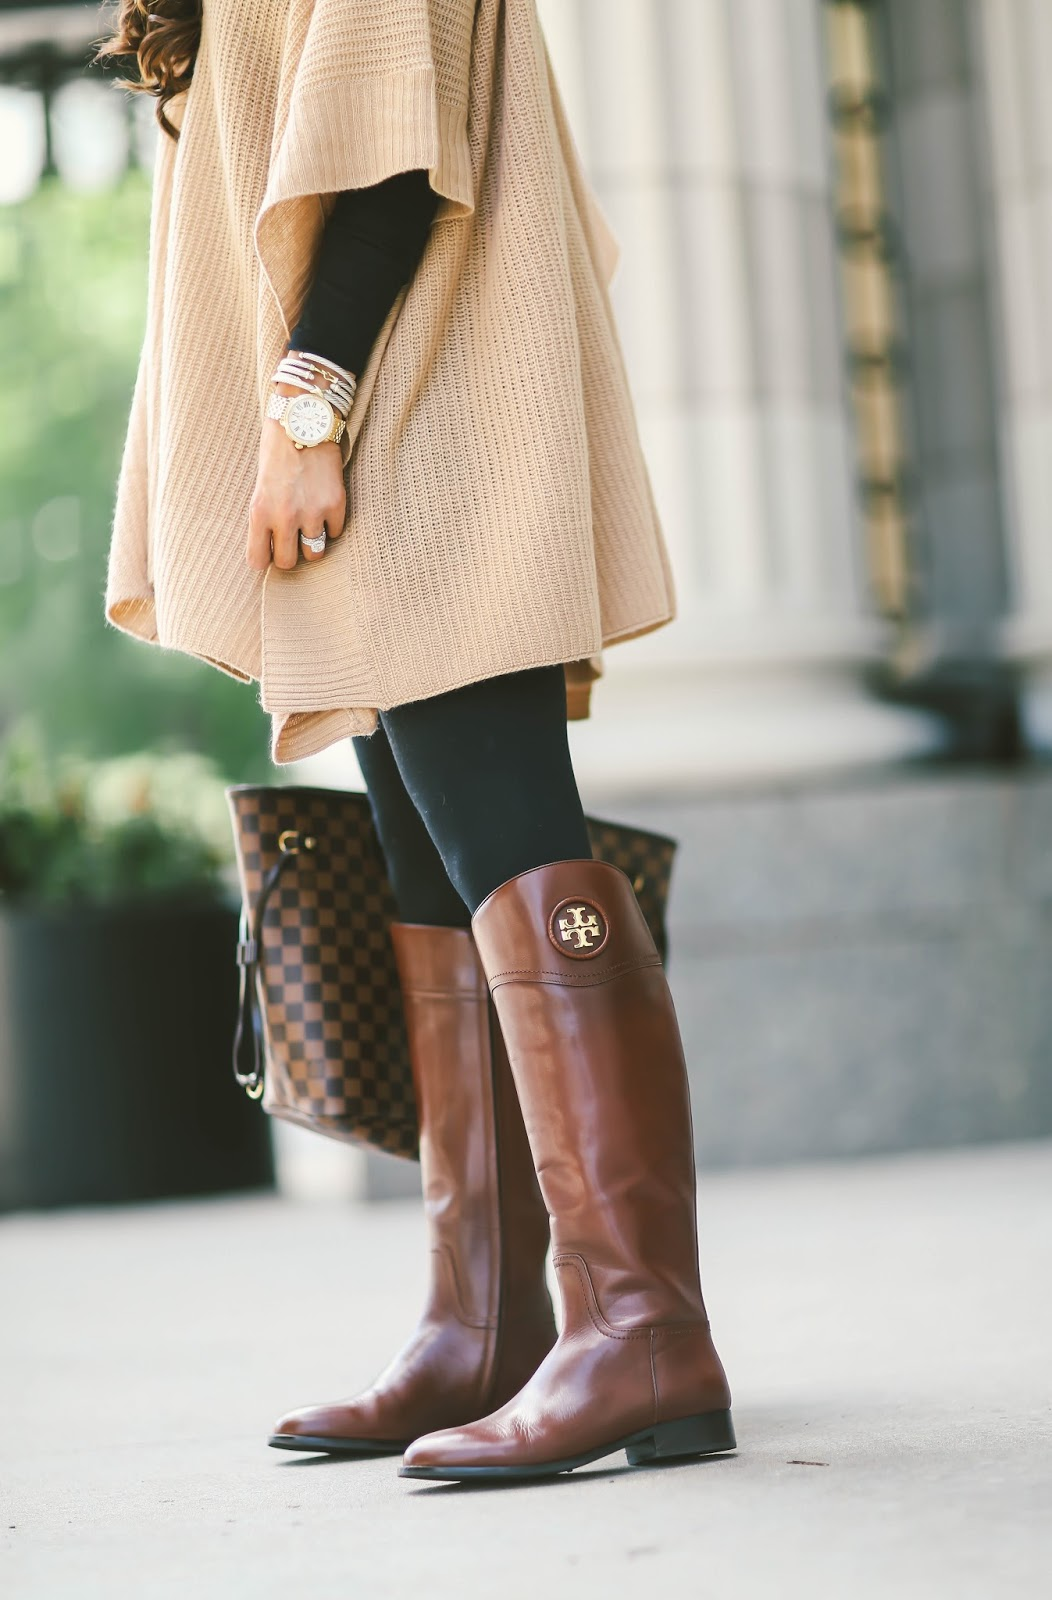 the-sweetest-thing-blog-emily-gemma-nsale-2016-best-of-nordstrom-anniversary-sale-nordstrom-sale-tory-burch-riding-boots-ashlyn-cashmere-poncho-nsale-nordstrom-anniversary-sale-3